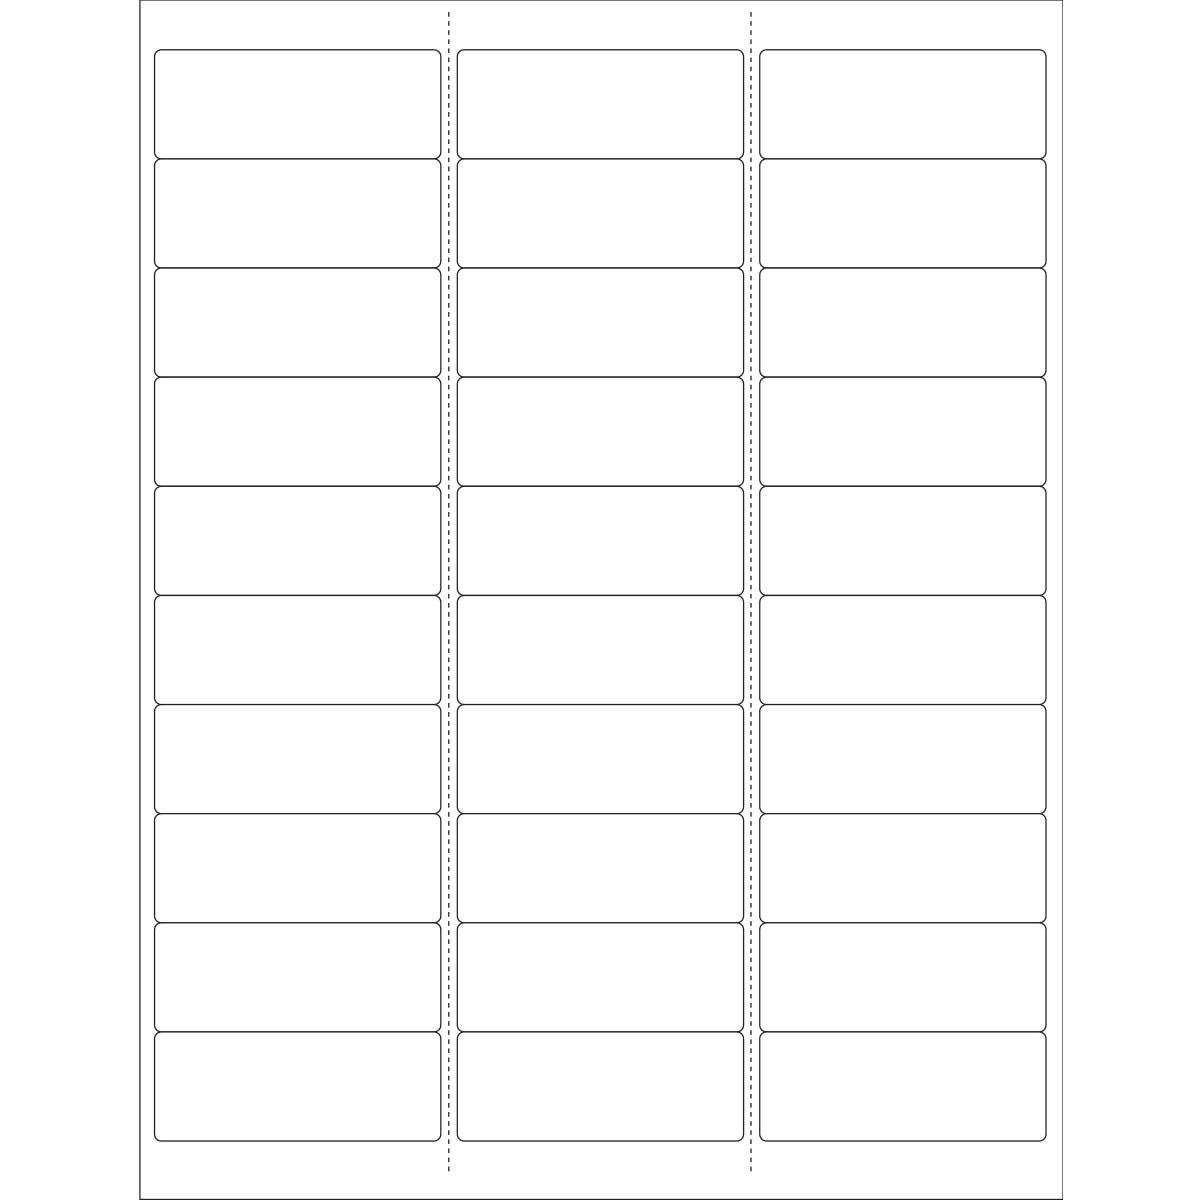 PDC Healthcare DPSL1-258-MI Paper Laser Wristband and Label Sheet, 11'' x 8-1/2 Sheet Size, White (Box of 30000)